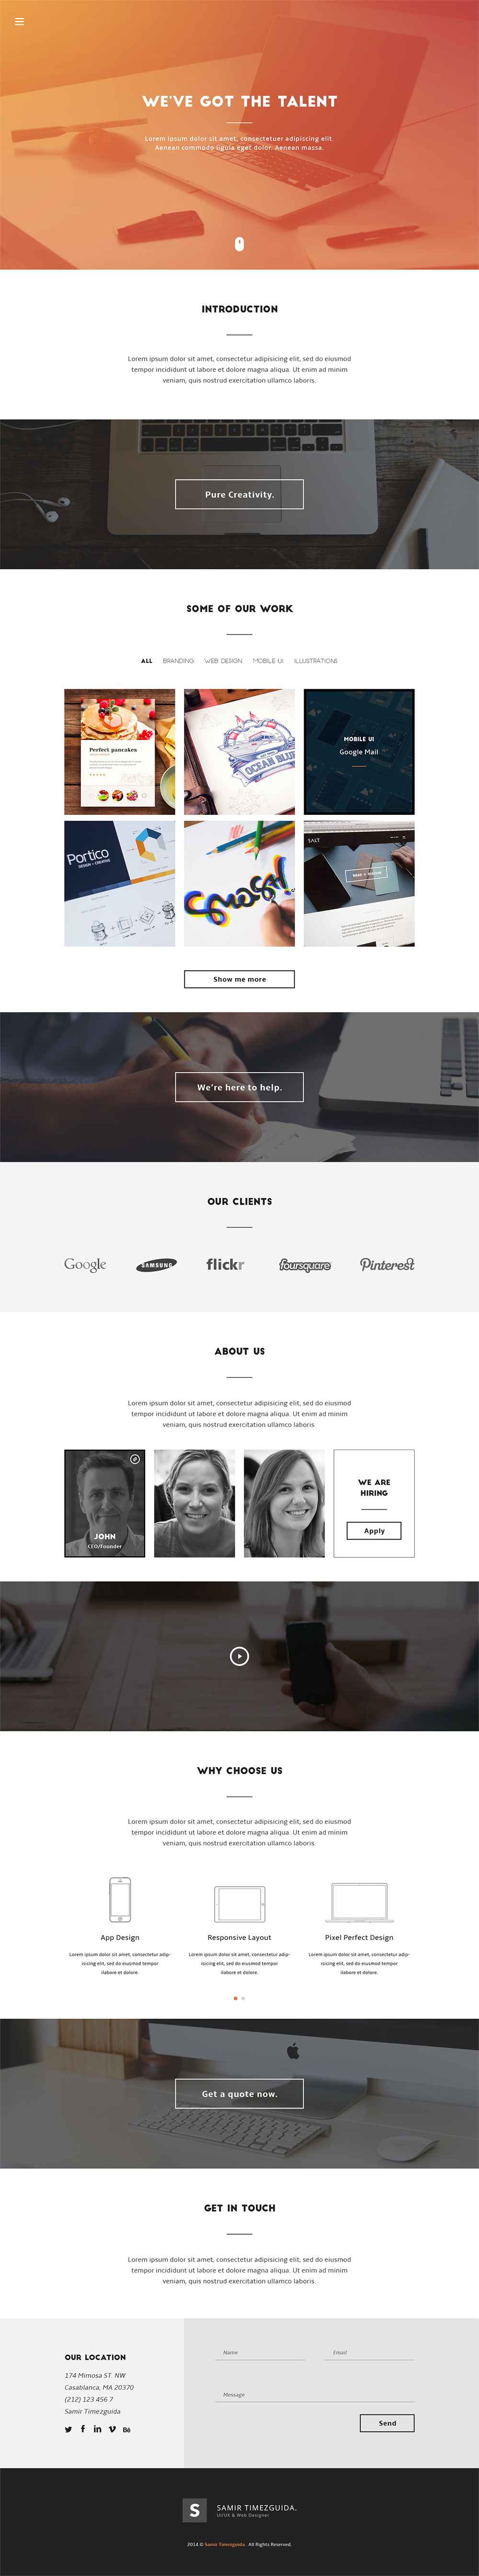 Casablanca Free HTML Template | Free HTML5 Templates